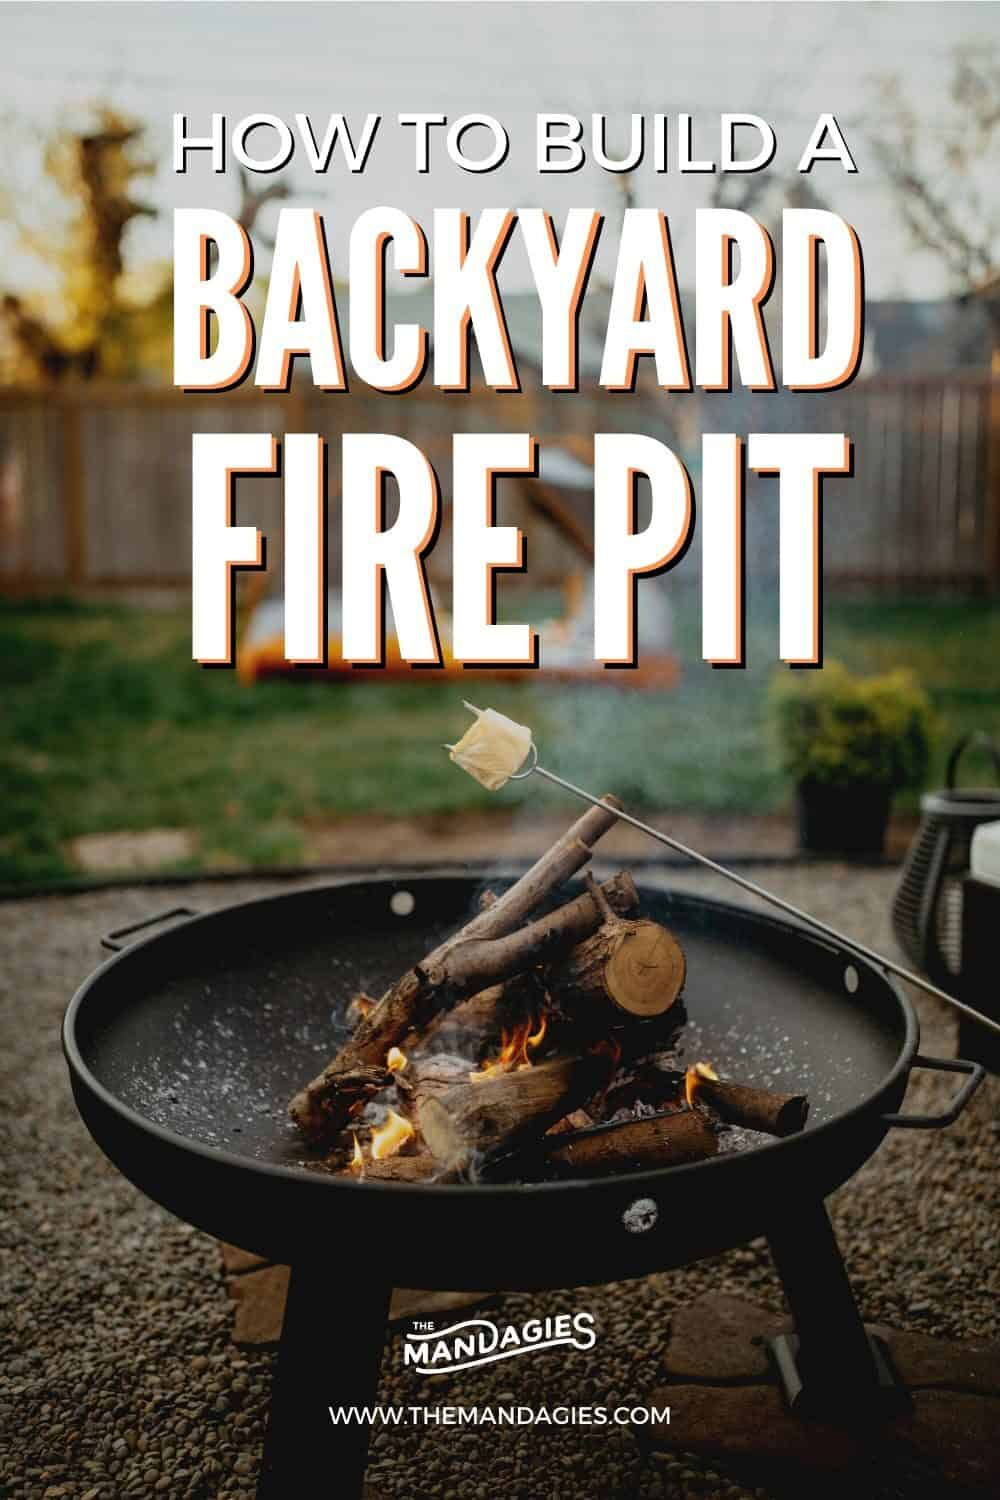 Ready to elevate your backyard? We're sharing our step by step guide to making our own backyard fire pit oasis, and all the tools we used to make it happen! Easy Fire Pit | DIY Fire Pit | Simple Fire Pit | How To Build A Fire Pit #DIY #doityourself #backyardfirepit #outdoorfirepit #homeimprovement #firepit #DIYfirepit #homereno #homeimprrovement #landscape #backyardproject #houseproject